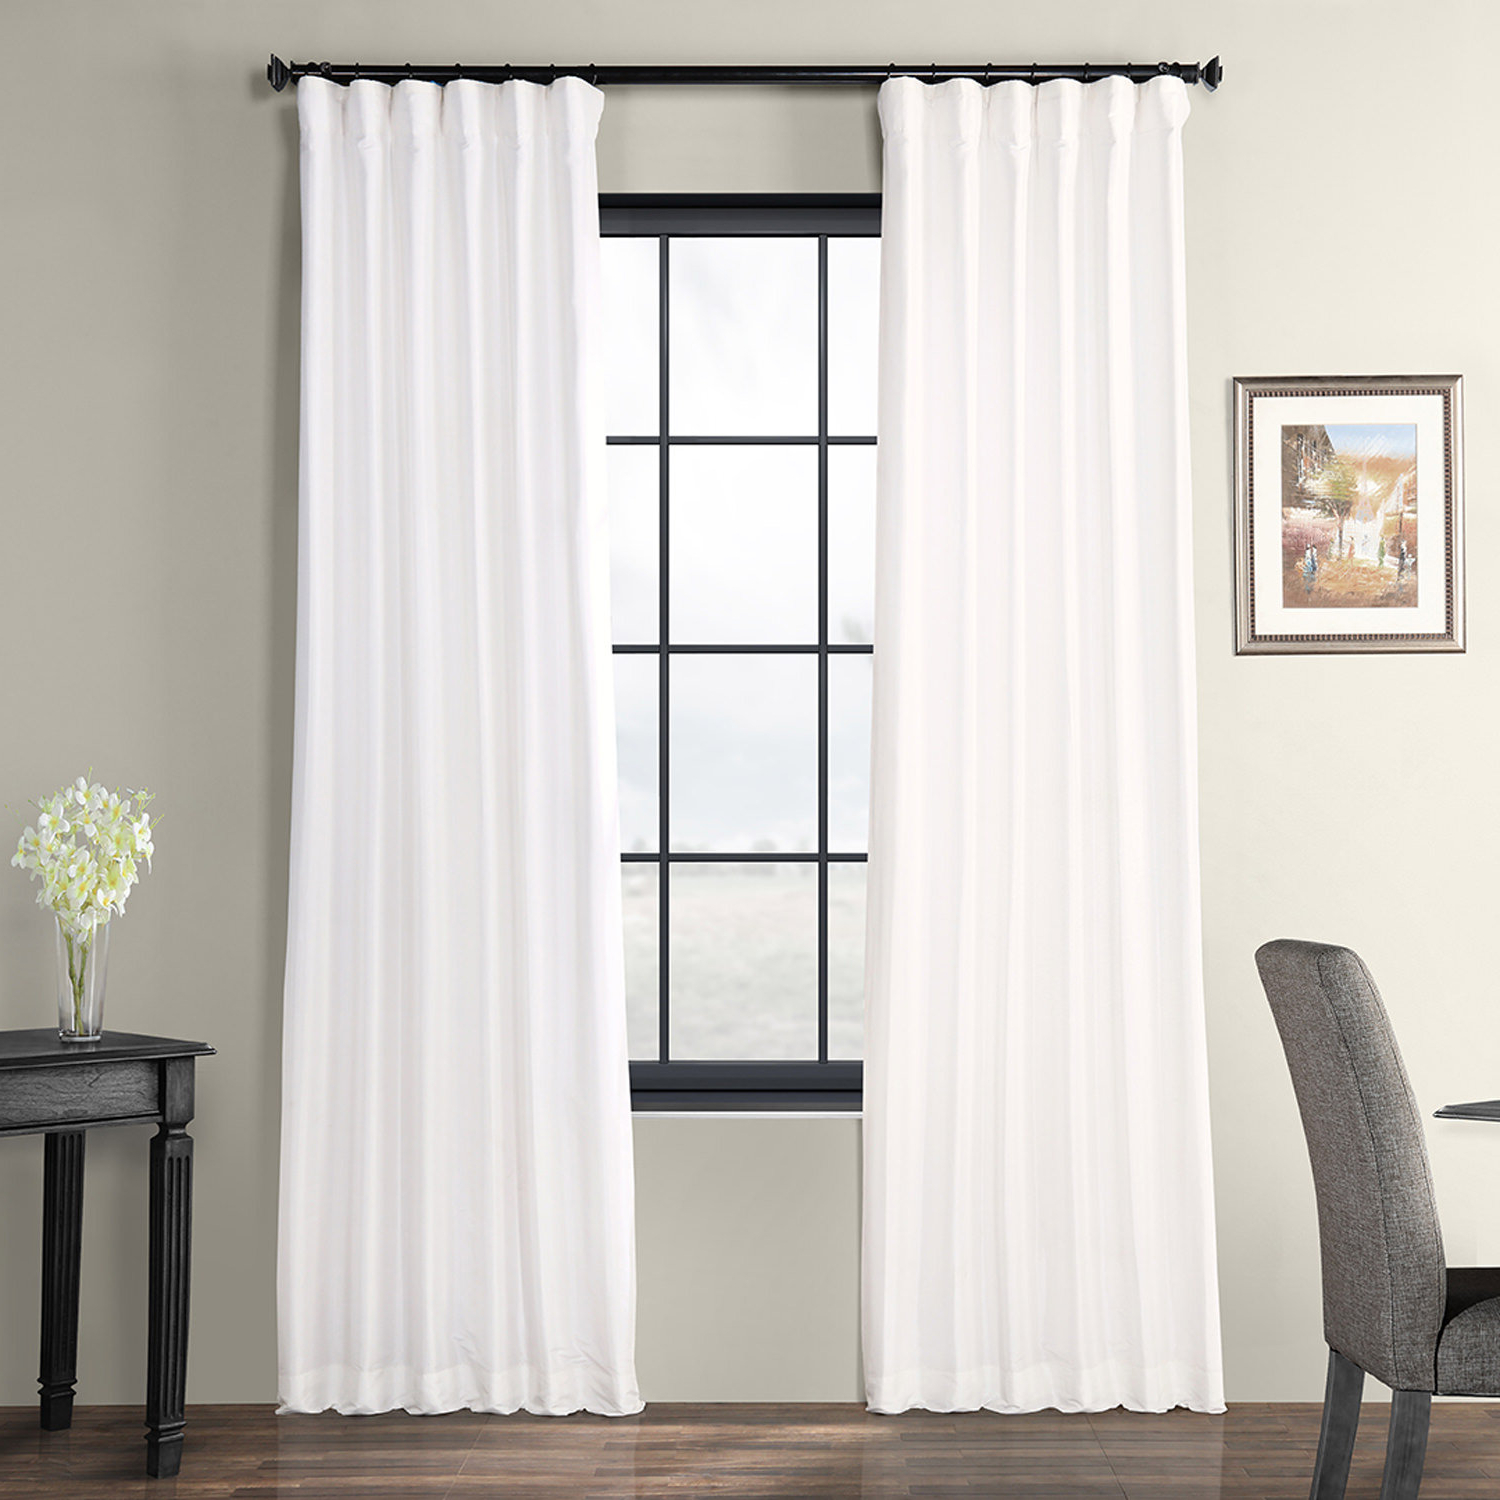 Faux Silk Taffeta Solid Blackout Single Curtain Panels Regarding Most Up To Date Lochleven Faux Silk Taffeta Solid Room Polyester Darkening Single Curtain Panel (View 6 of 20)